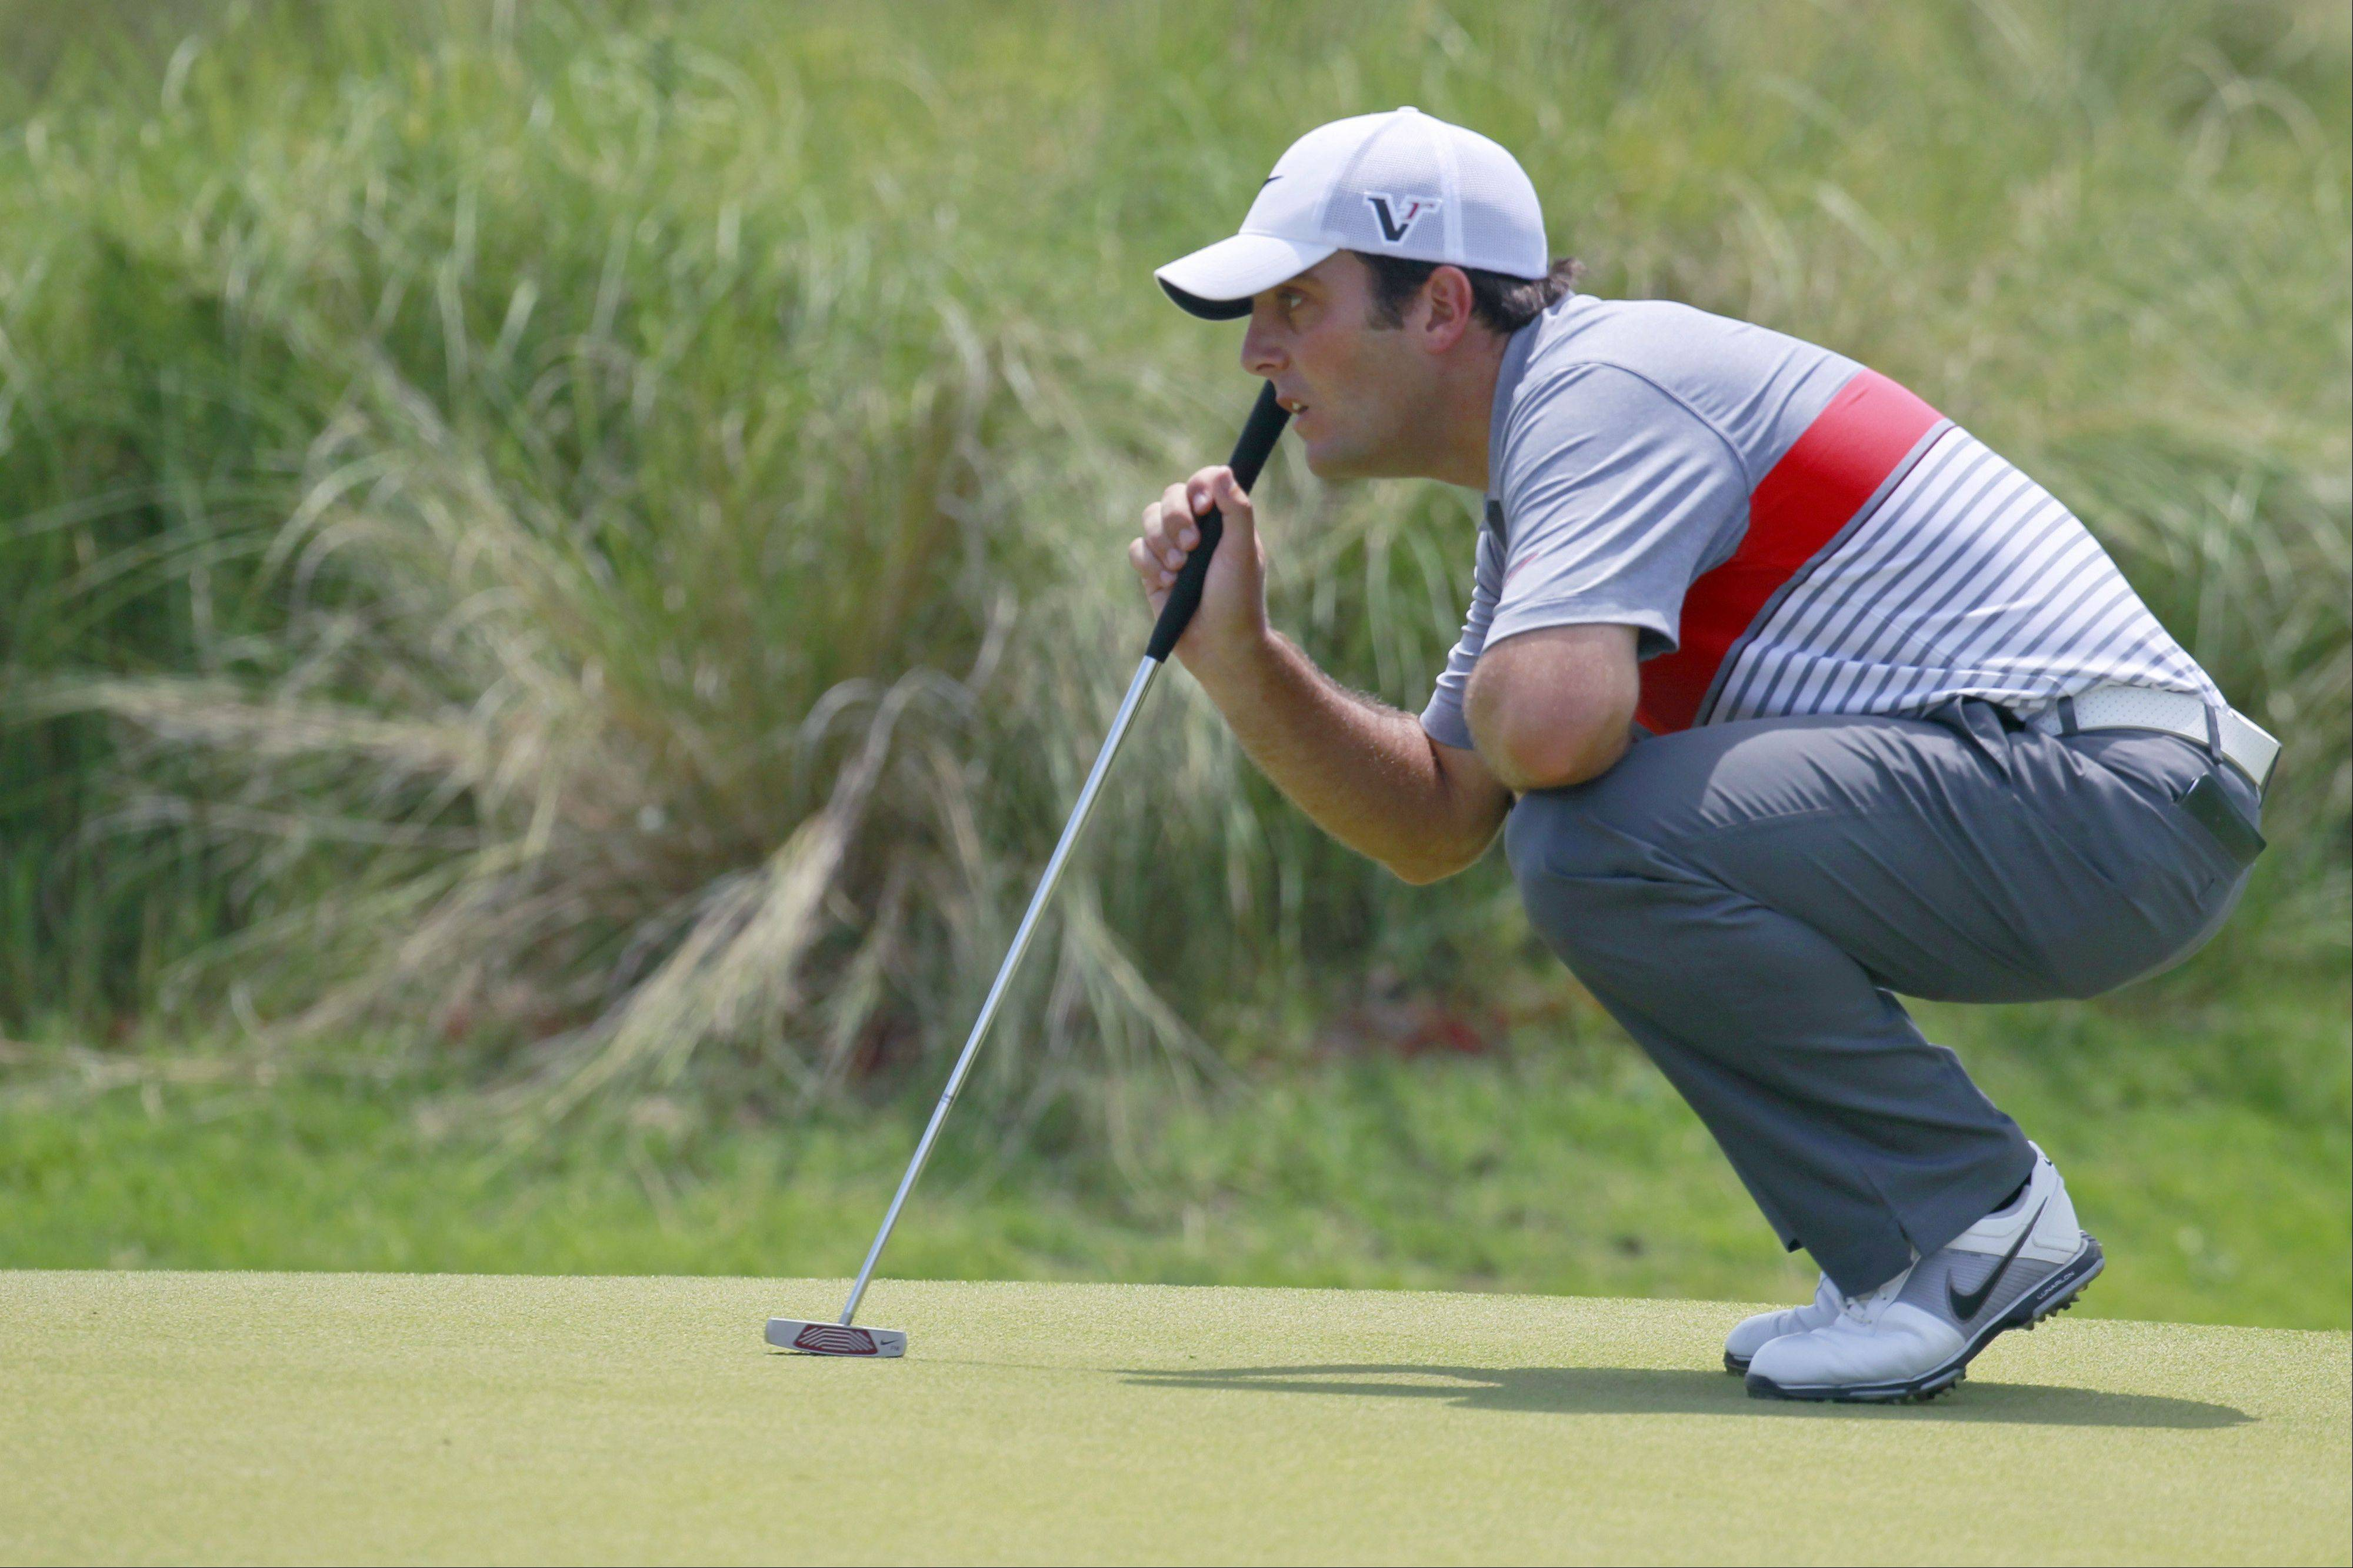 Francesco Molinari of Italy lines up his putt on the second hole during the third round of the PGA Championship golf tournament on the Ocean Course of the Kiawah Island Golf Resort in Kiawah Island, S.C., Saturday, Aug. 11, 2012.